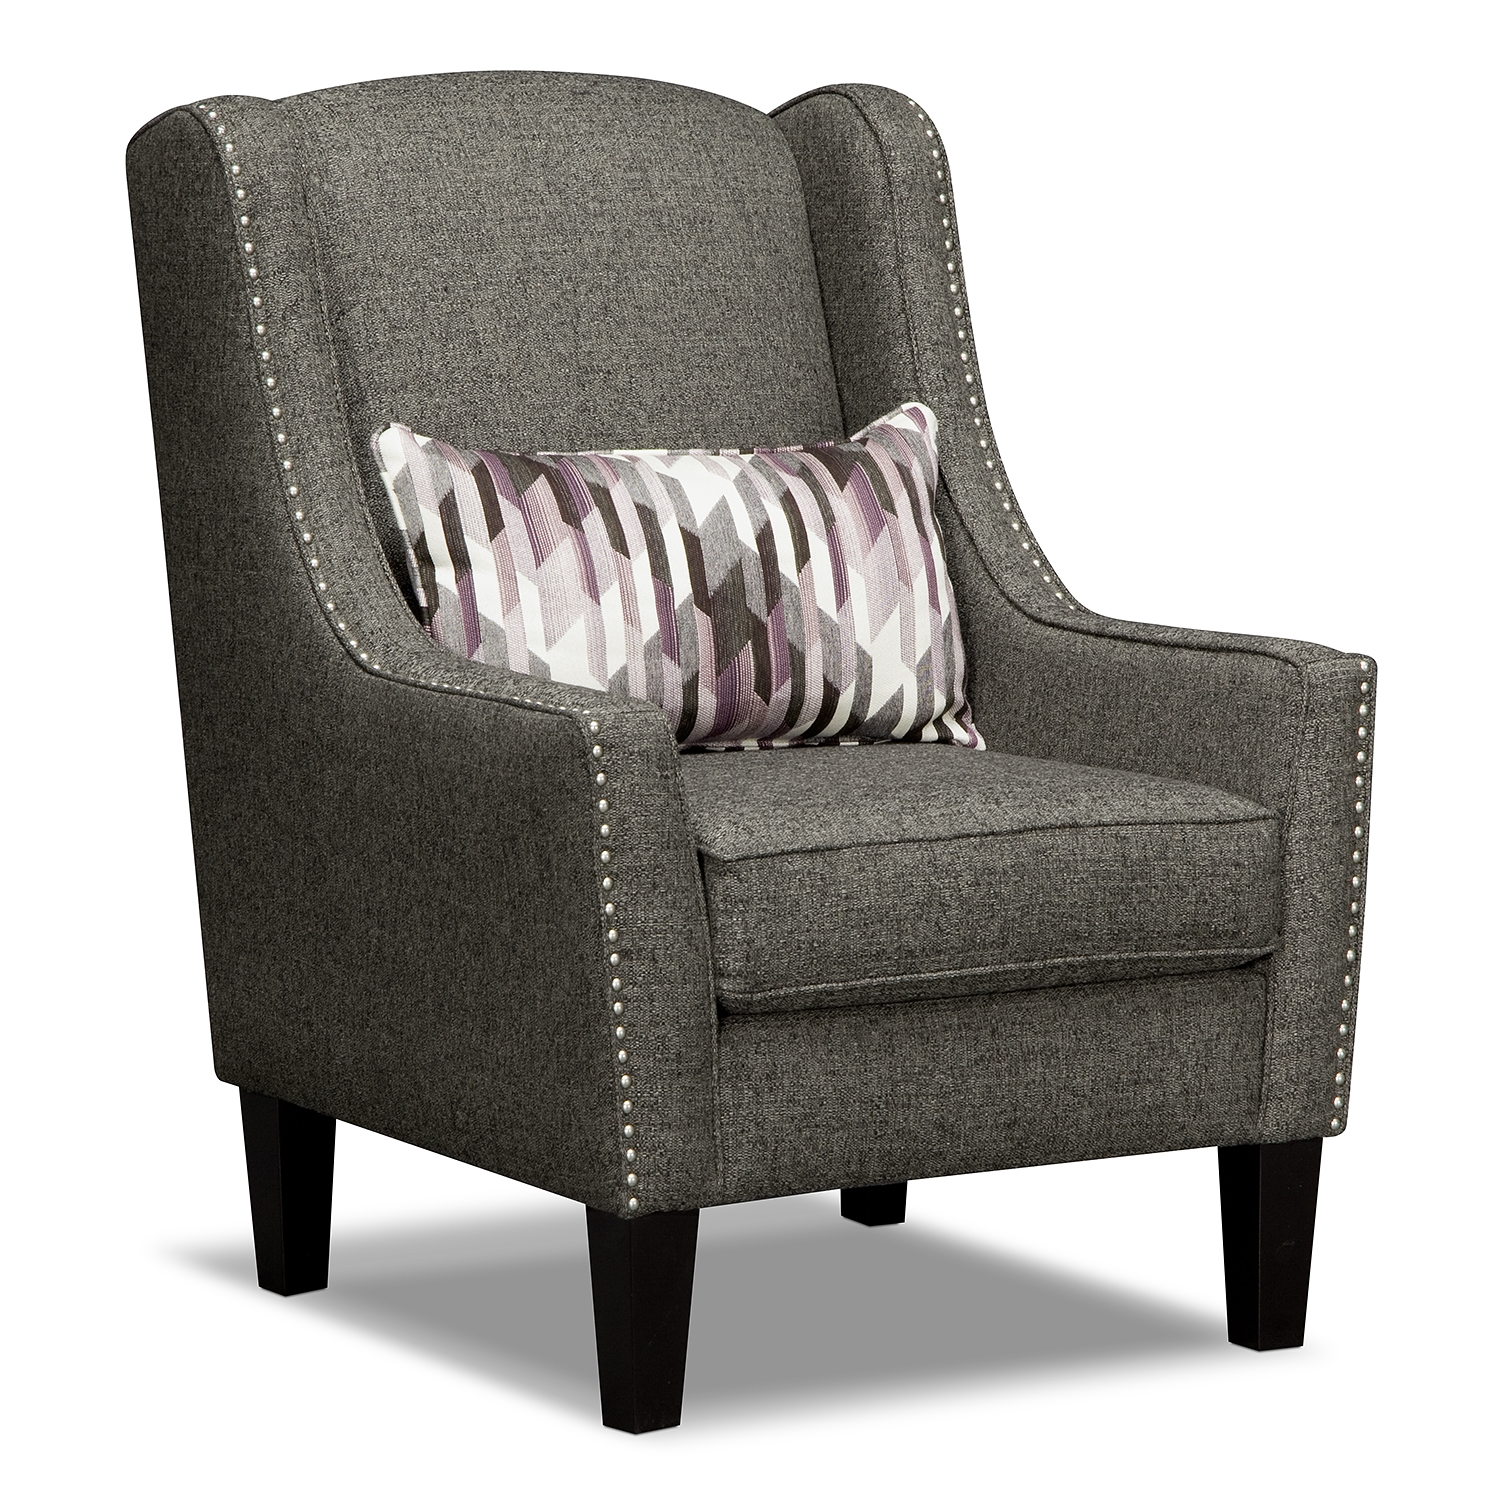 Awesome accent chair for home furniture ideas with accent chairs with arms and accent chairs for living room